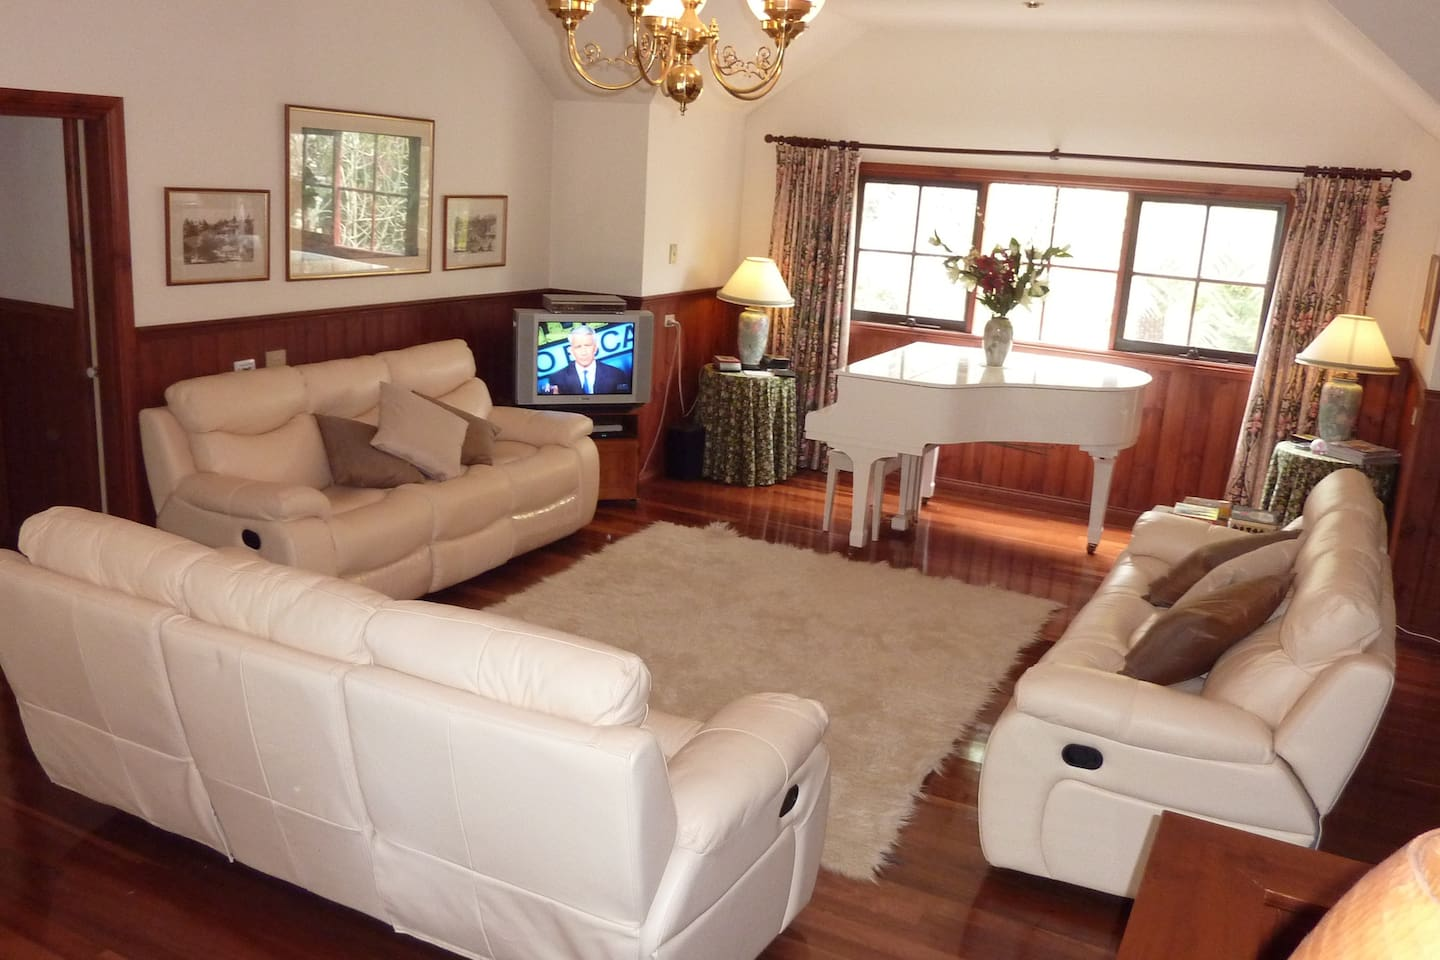 This is your own lounge room. The host lounge room is downstairs. It comfortably seats a maximum of 8 guests.